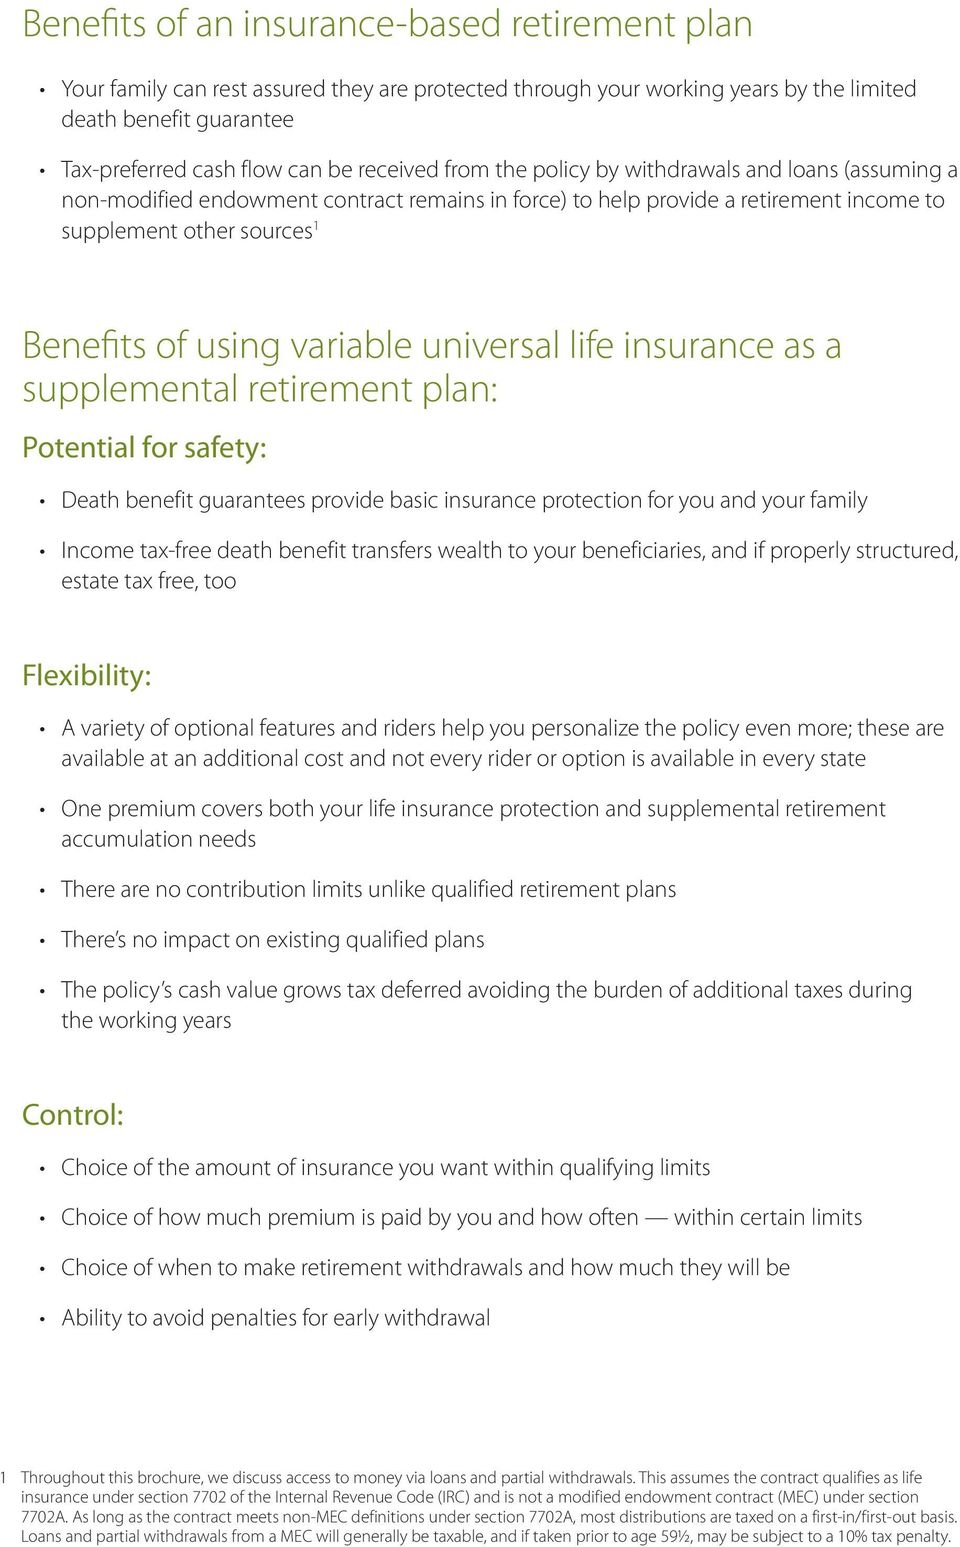 variable universal life insurance as a supplemental retirement plan: Potential for safety: Death benefit guarantees provide basic insurance protection for you and your family Income tax-free death